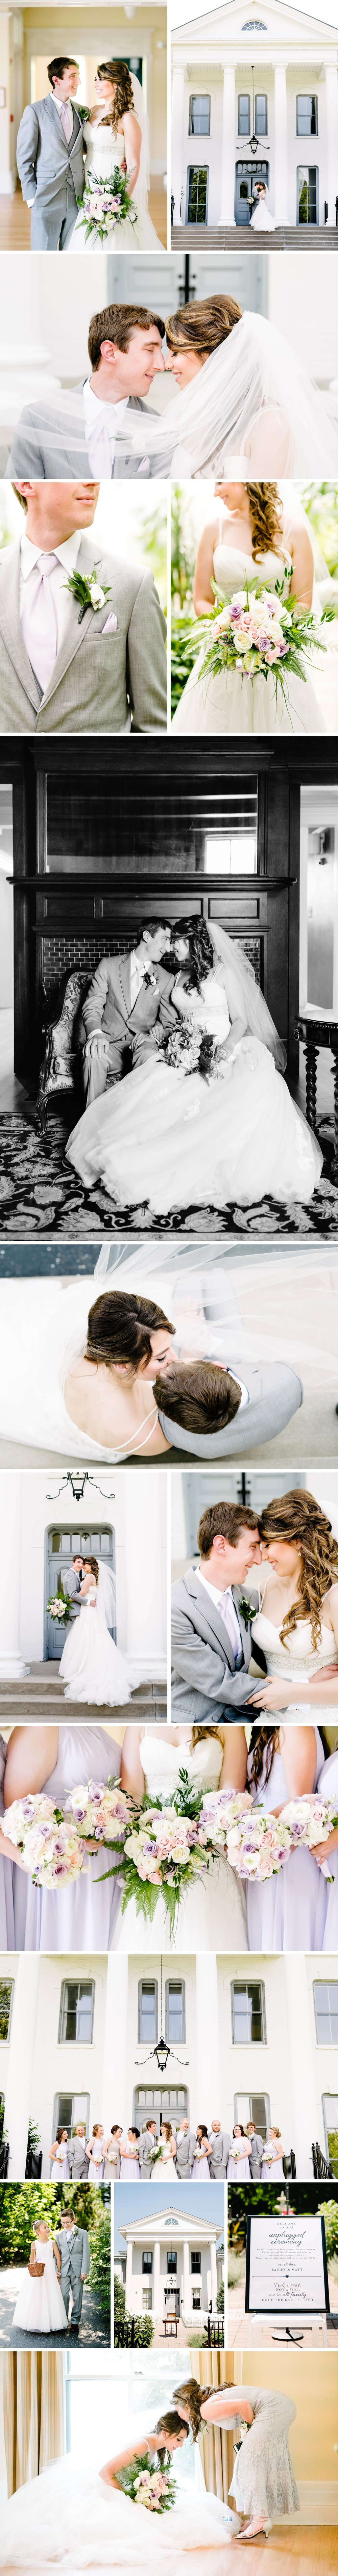 chicago-fine-art-wedding-photography-iwinski7